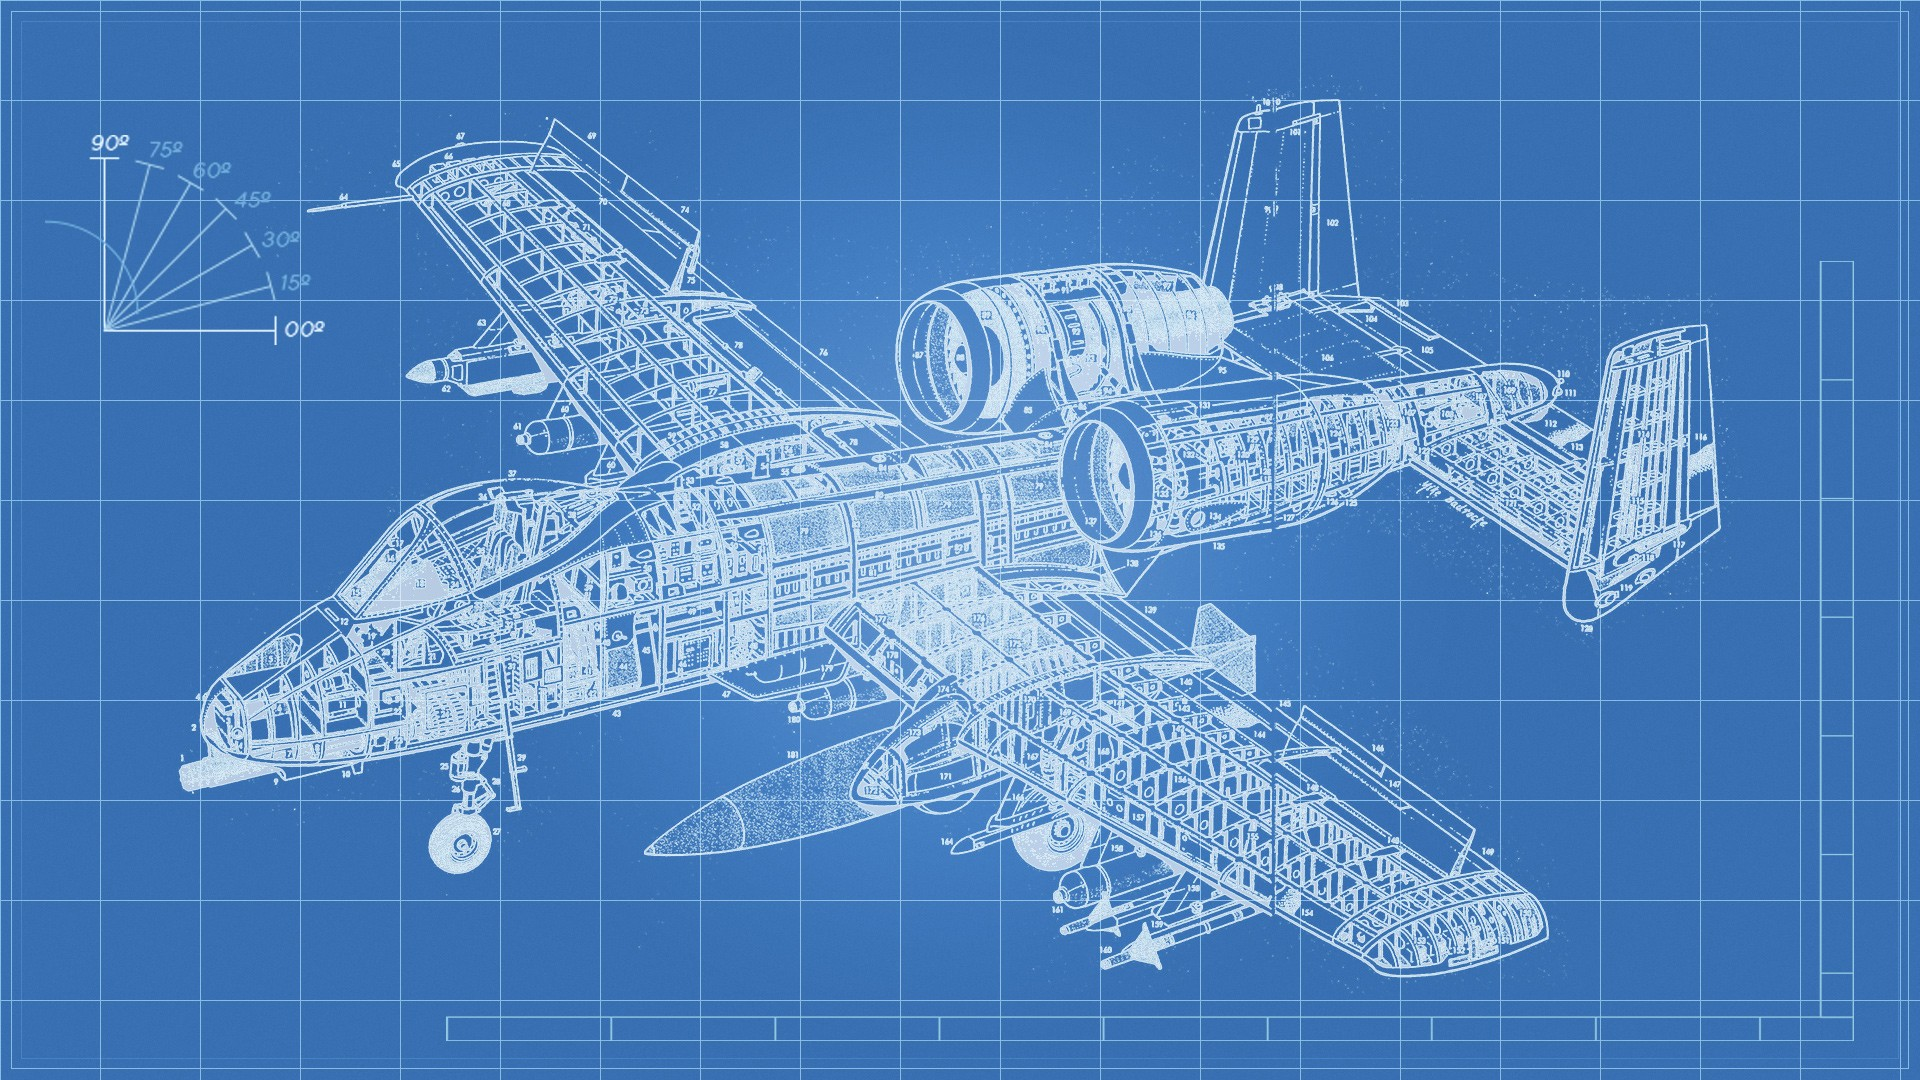 Airplane engineering a 10 thunderbolt blueprints technology download wallpaper malvernweather Choice Image